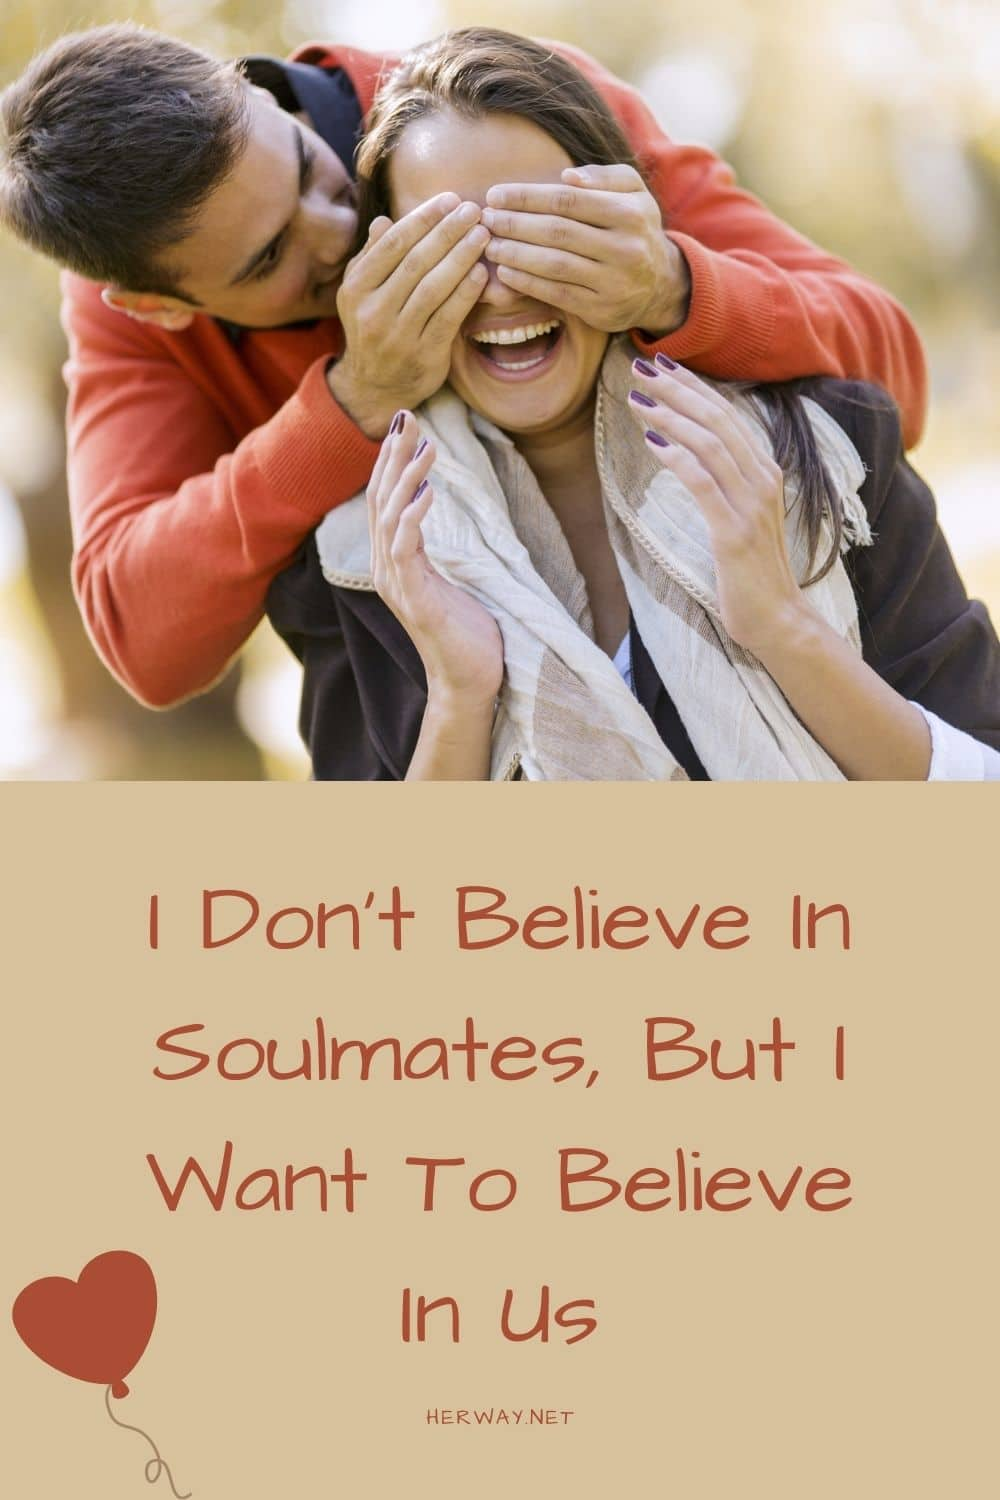 I Don't Believe In Soulmates, But I Want To Believe In Us